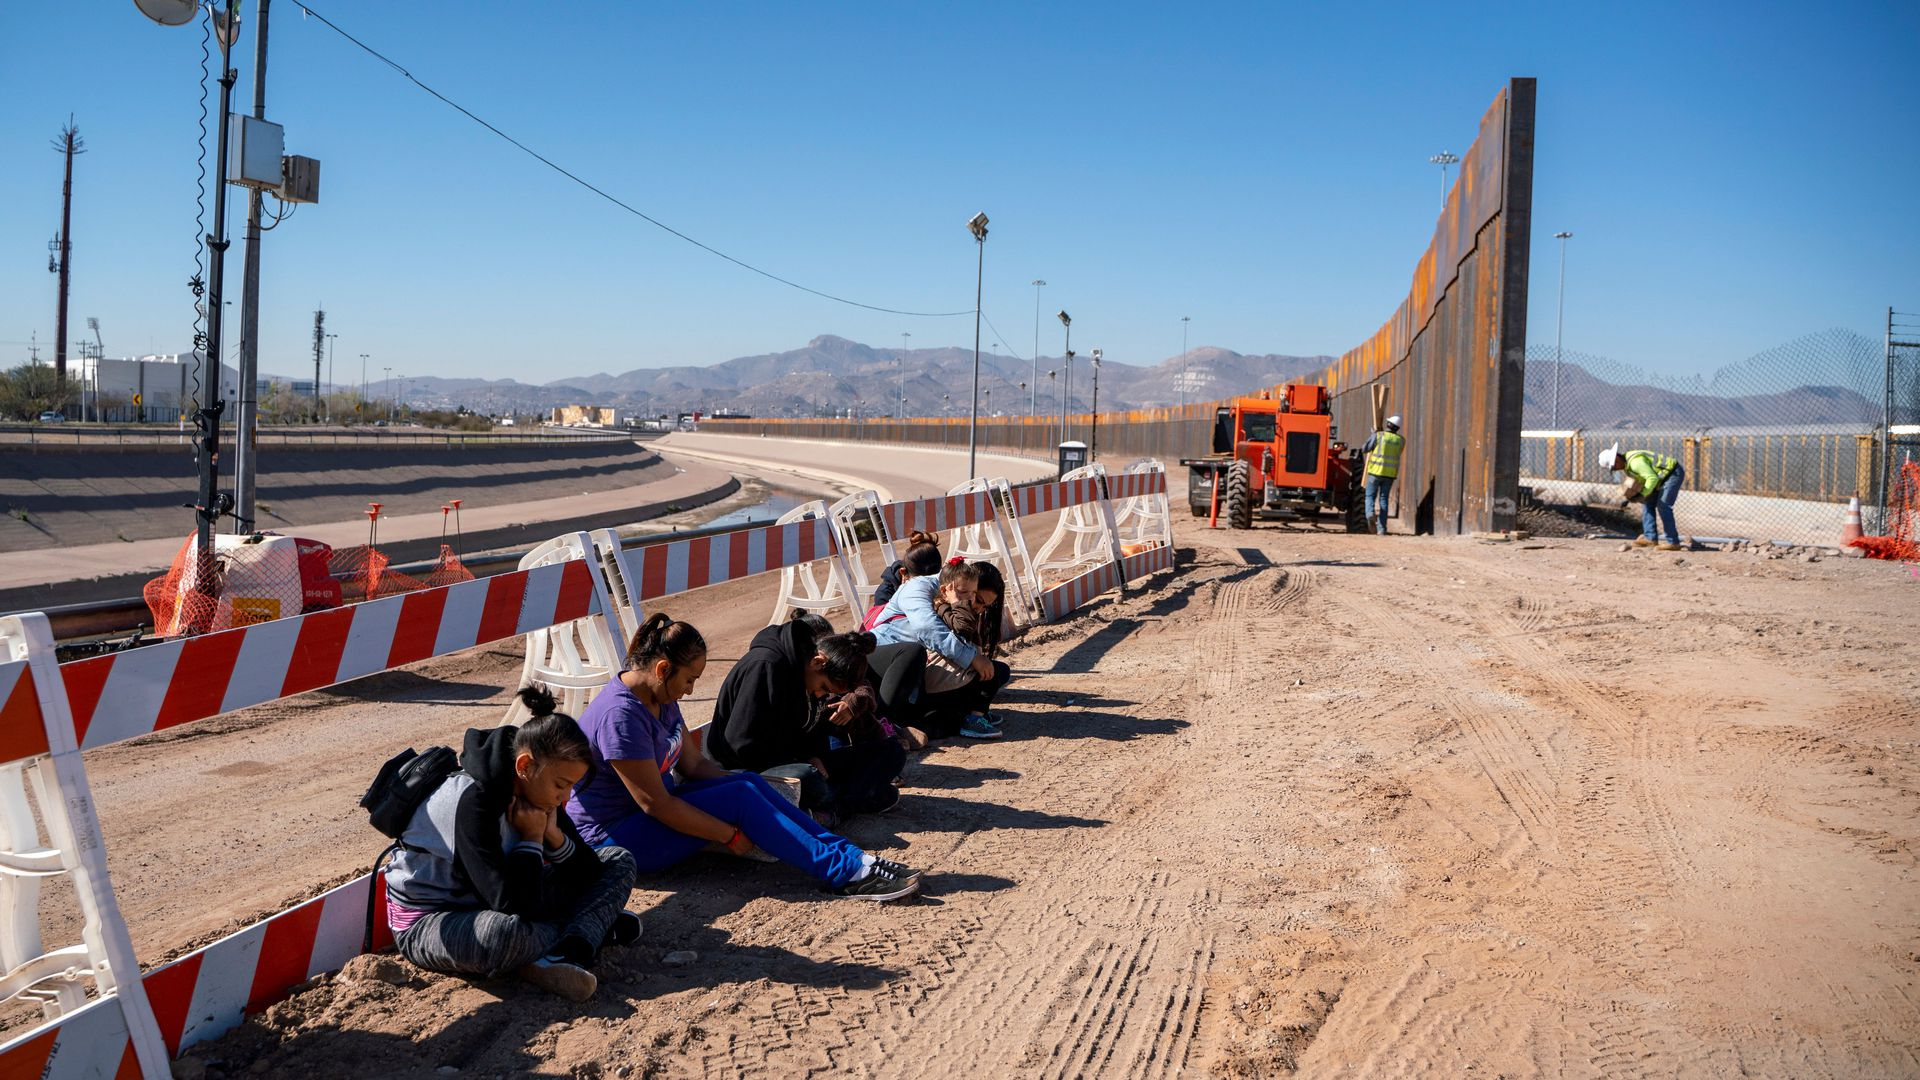 migrants wait for a transport to arrive after turning themselves into US Border Patrol by border fence under construction